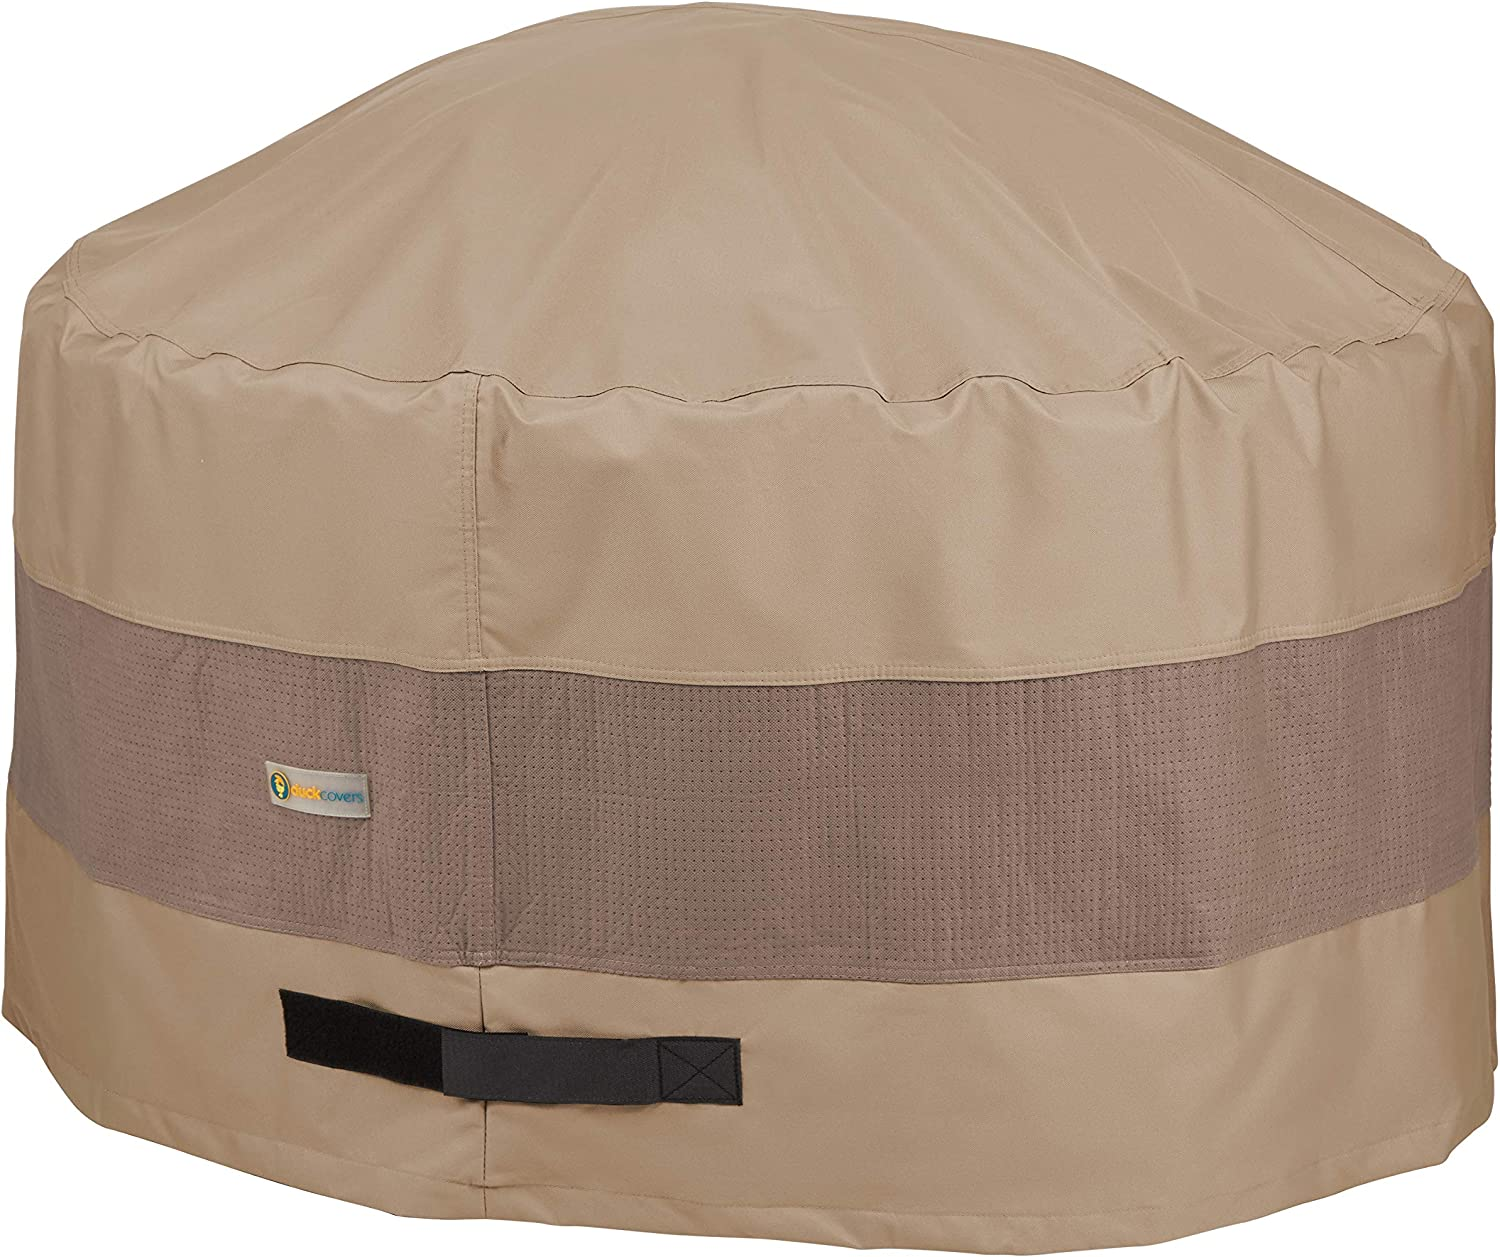 Duck Covers Elegant Water-Resistant 36 Inch Round Fire Pit Cover